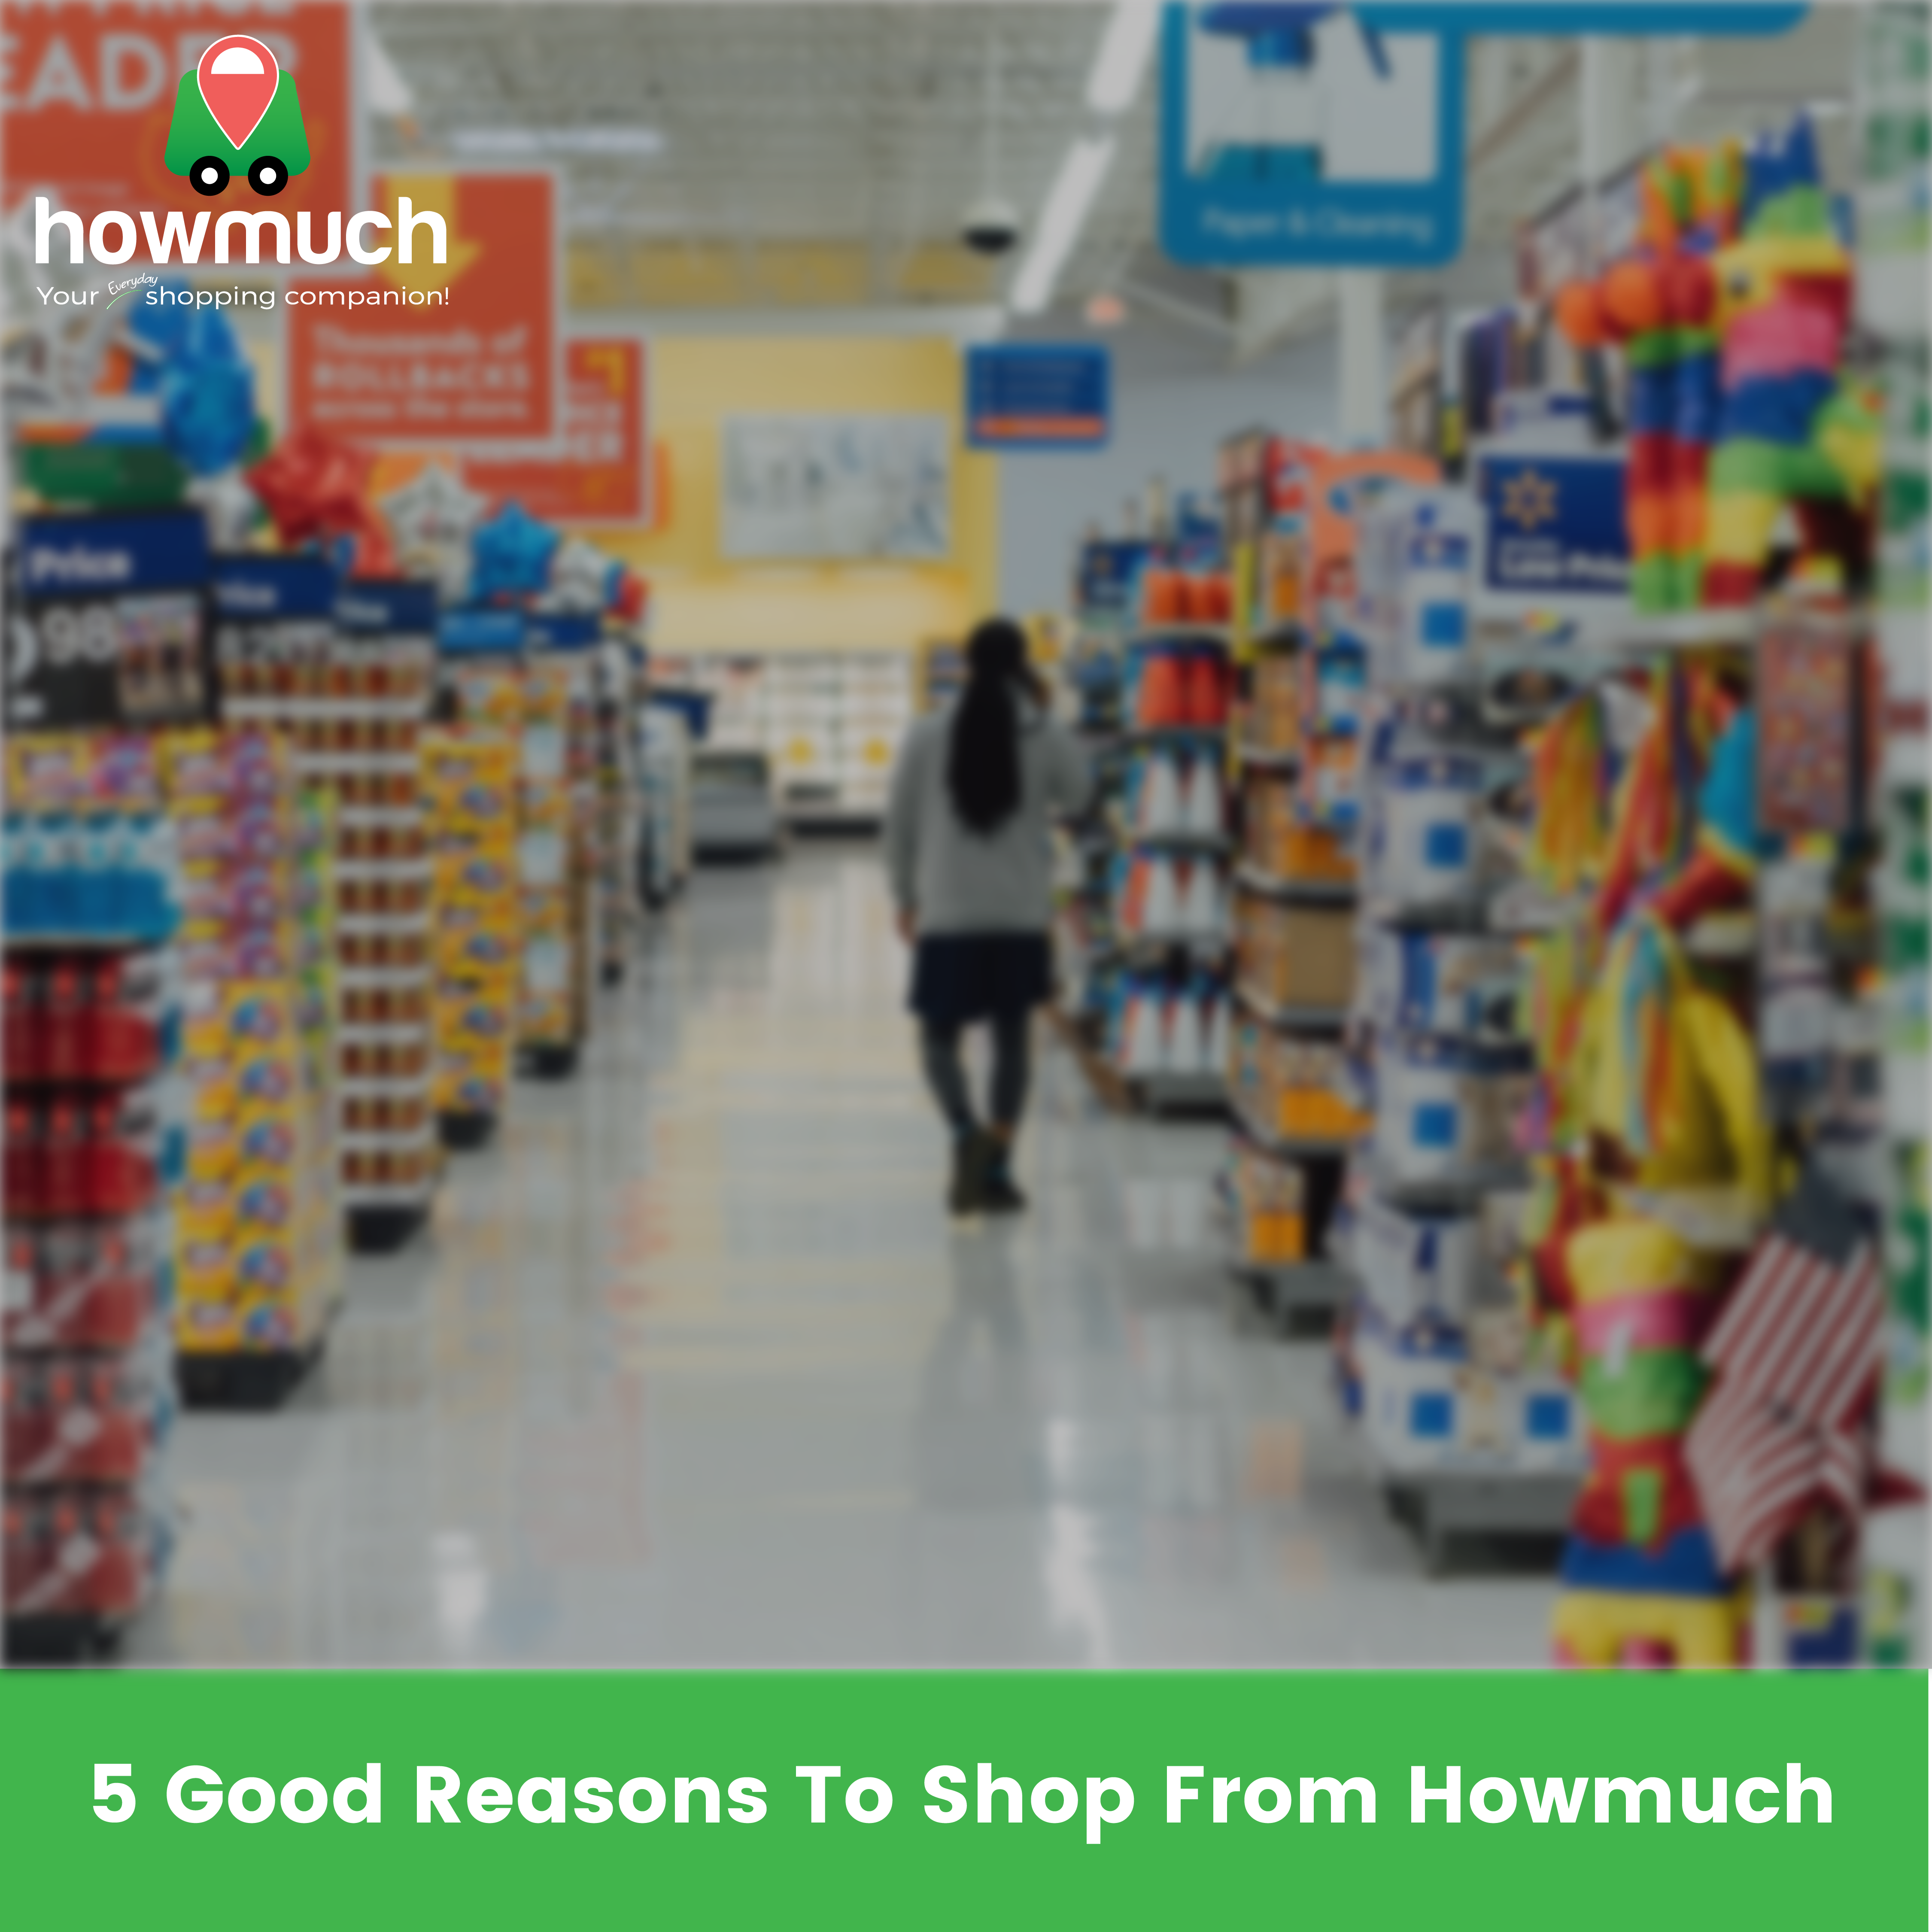 5 Good Reasons To Shop From Howmuch